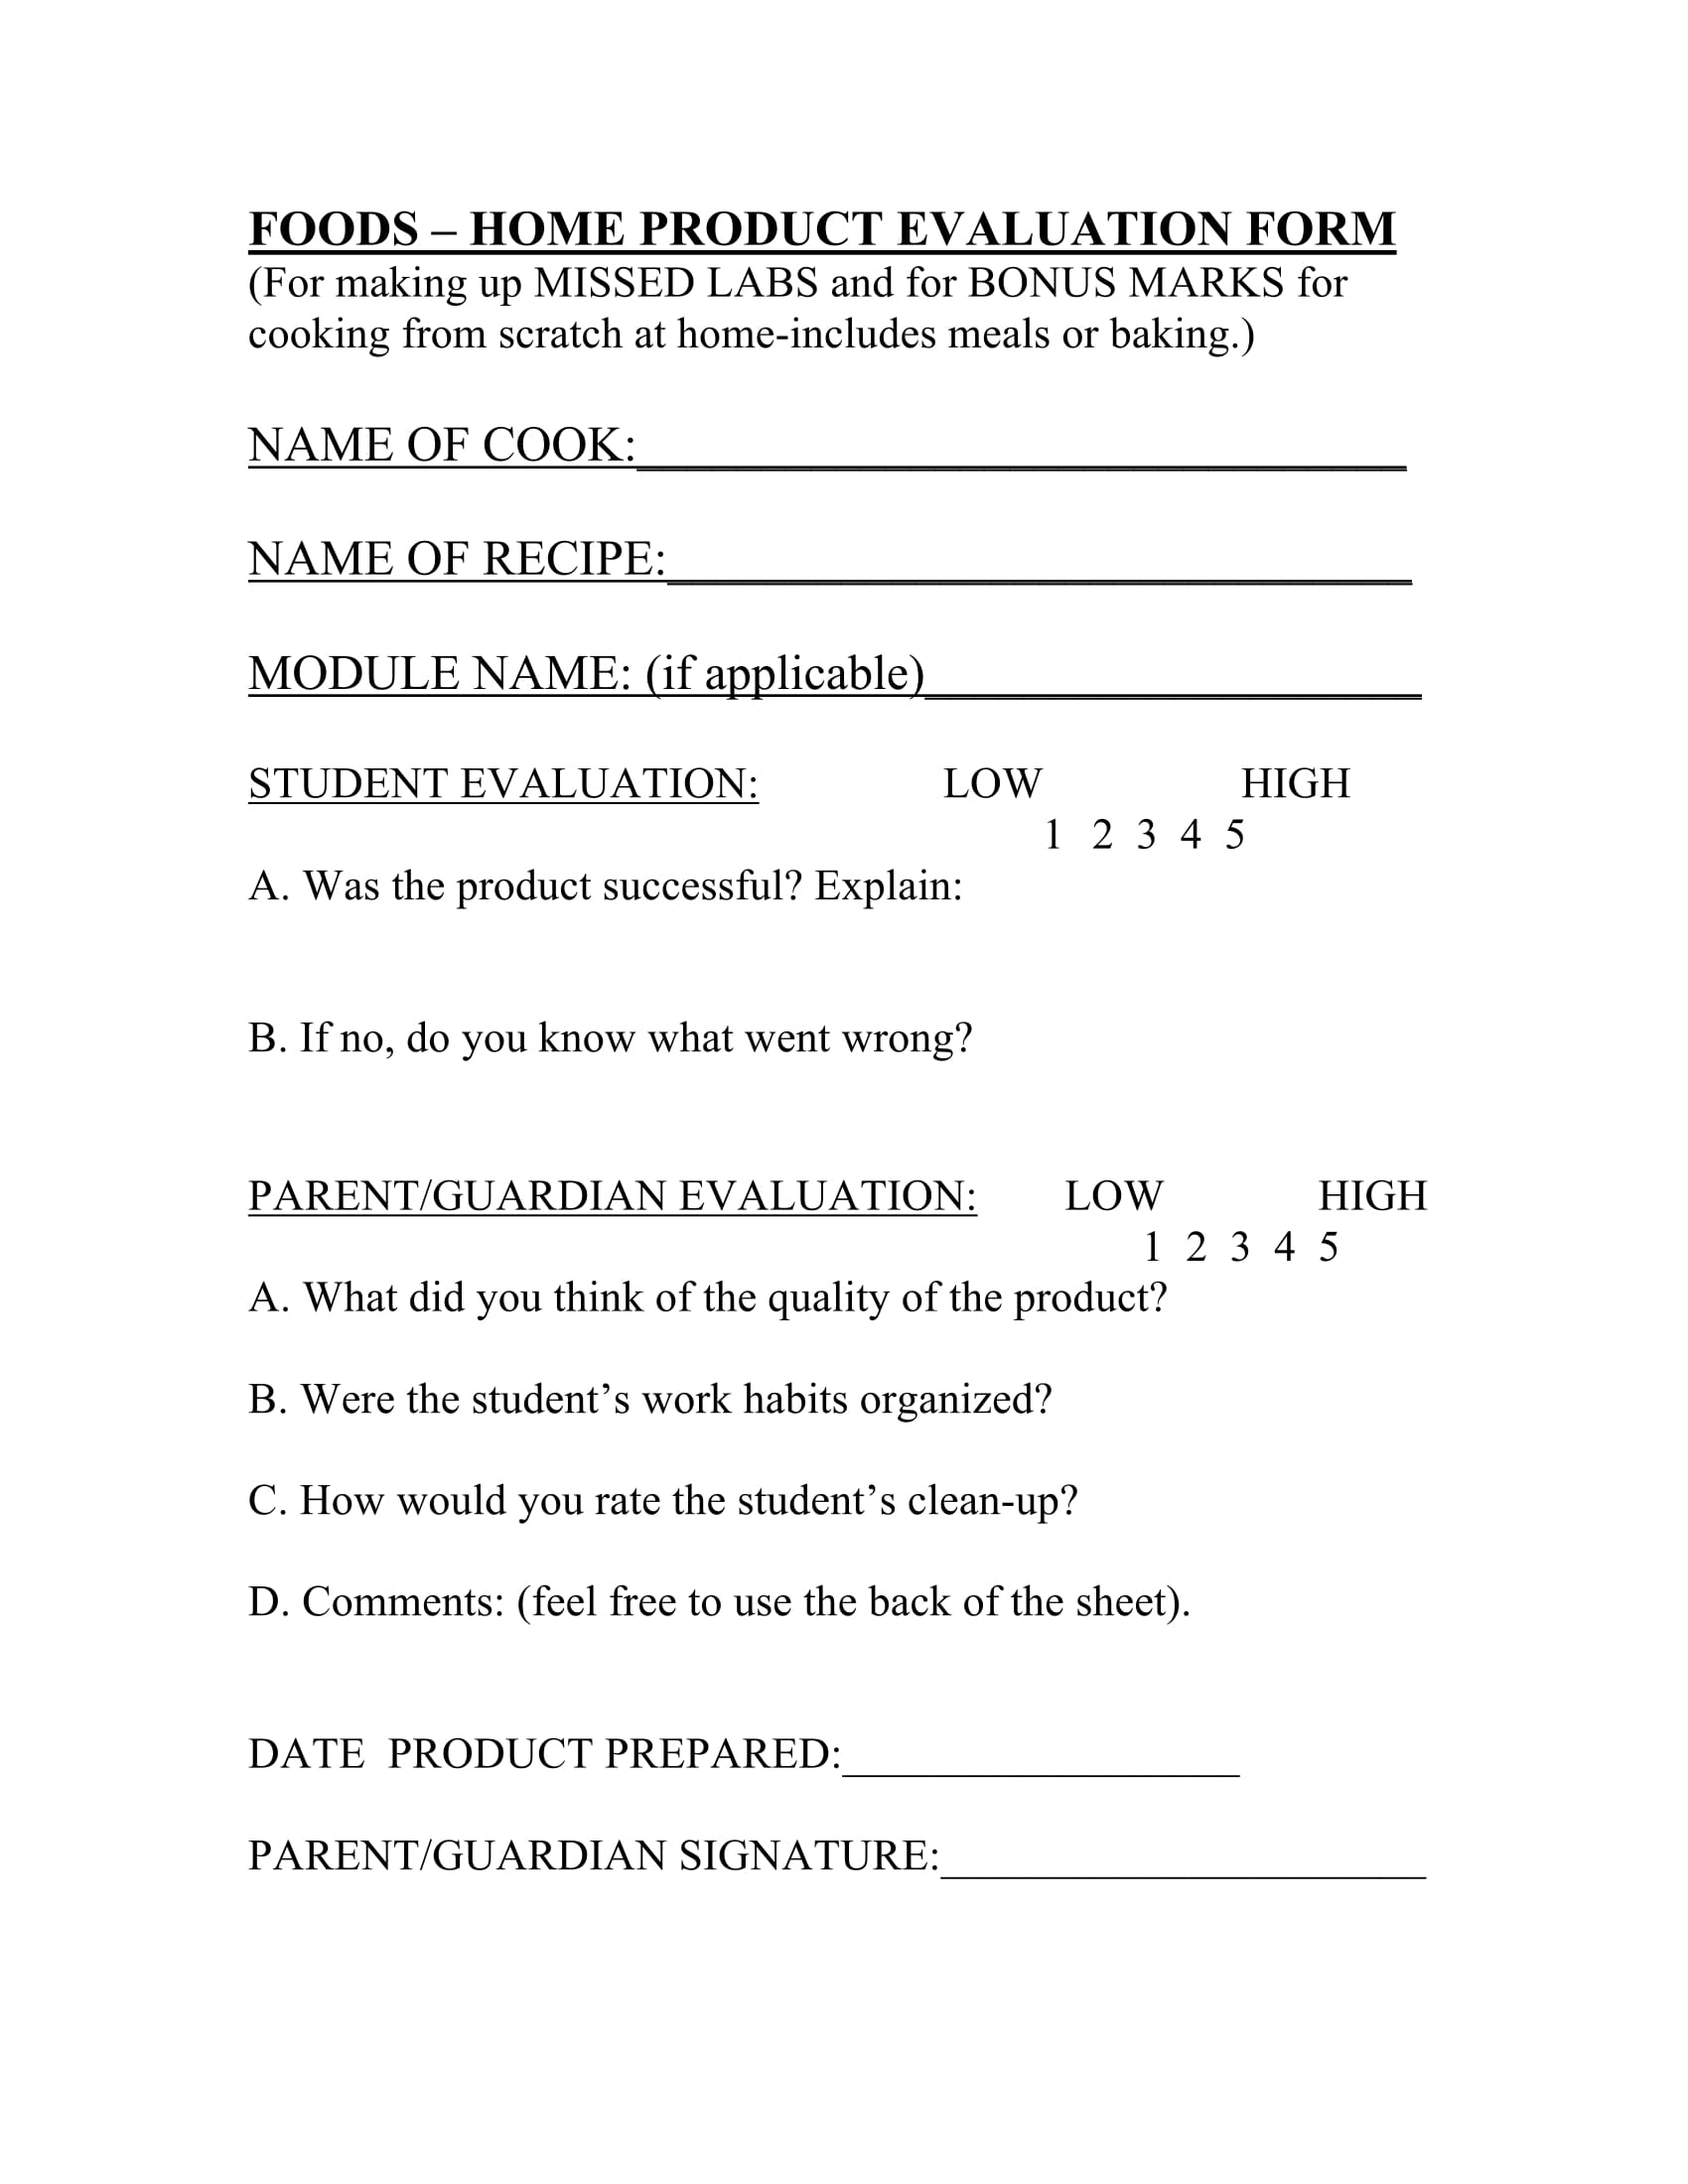 food product evaluation form 1